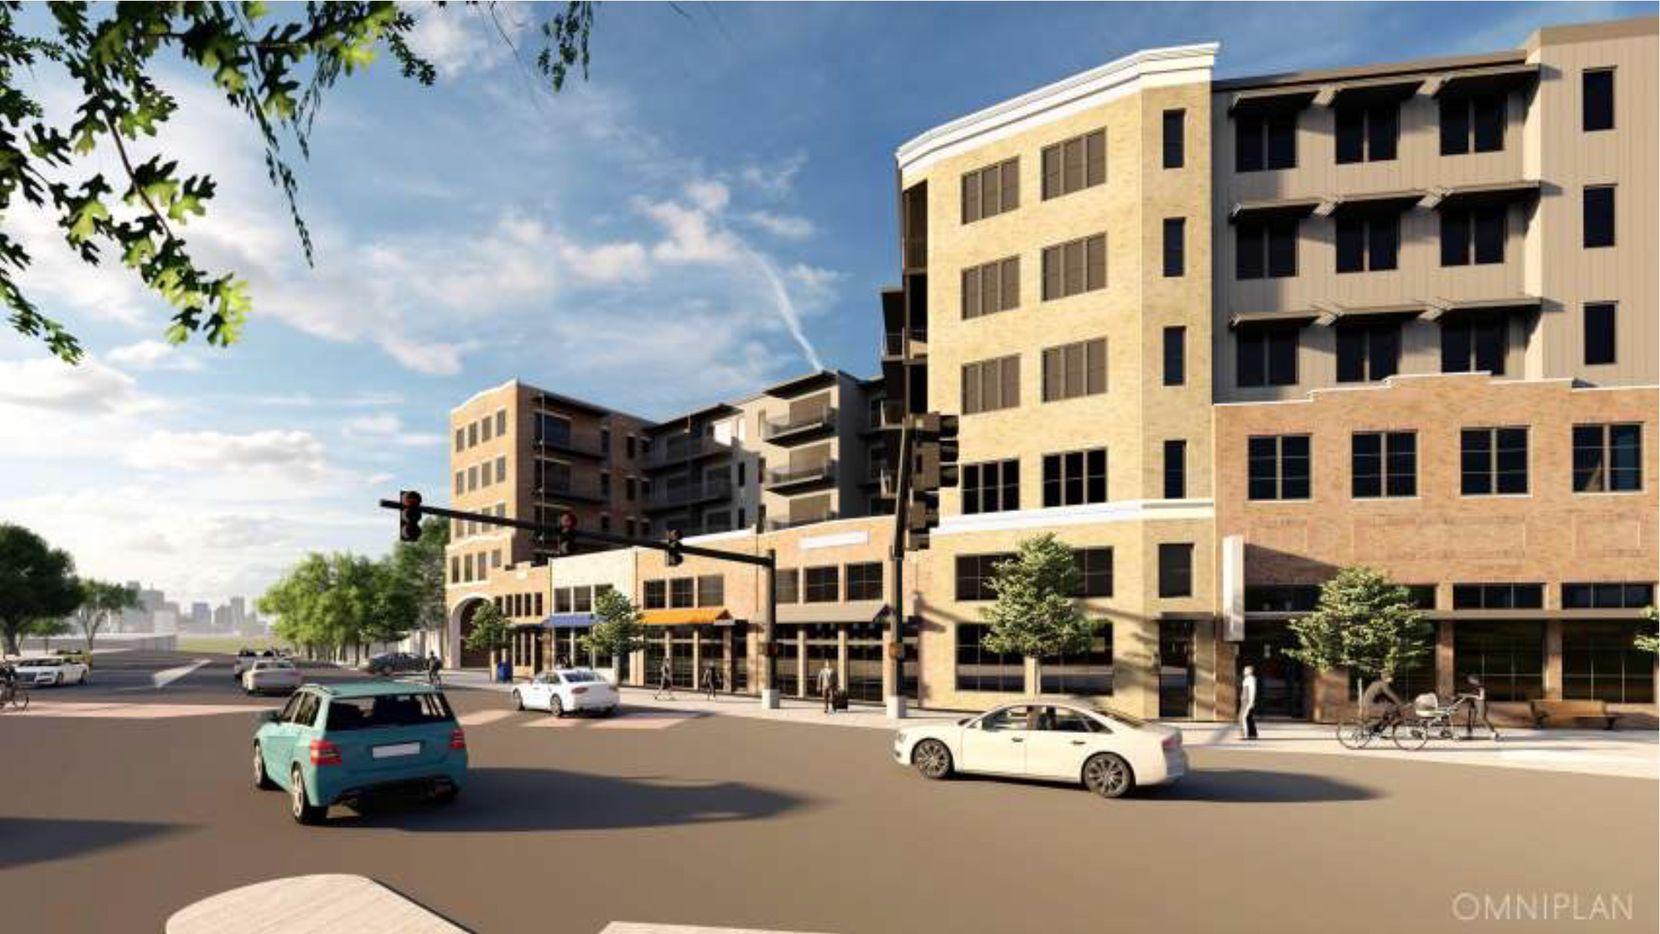 Construction on Zang Flats, which will feature a pool, coworking space, a gym, a dog wash, a resident bicycle repair shop, a dedicated Uber loading zone and electric vehicle charging, will begin in May.